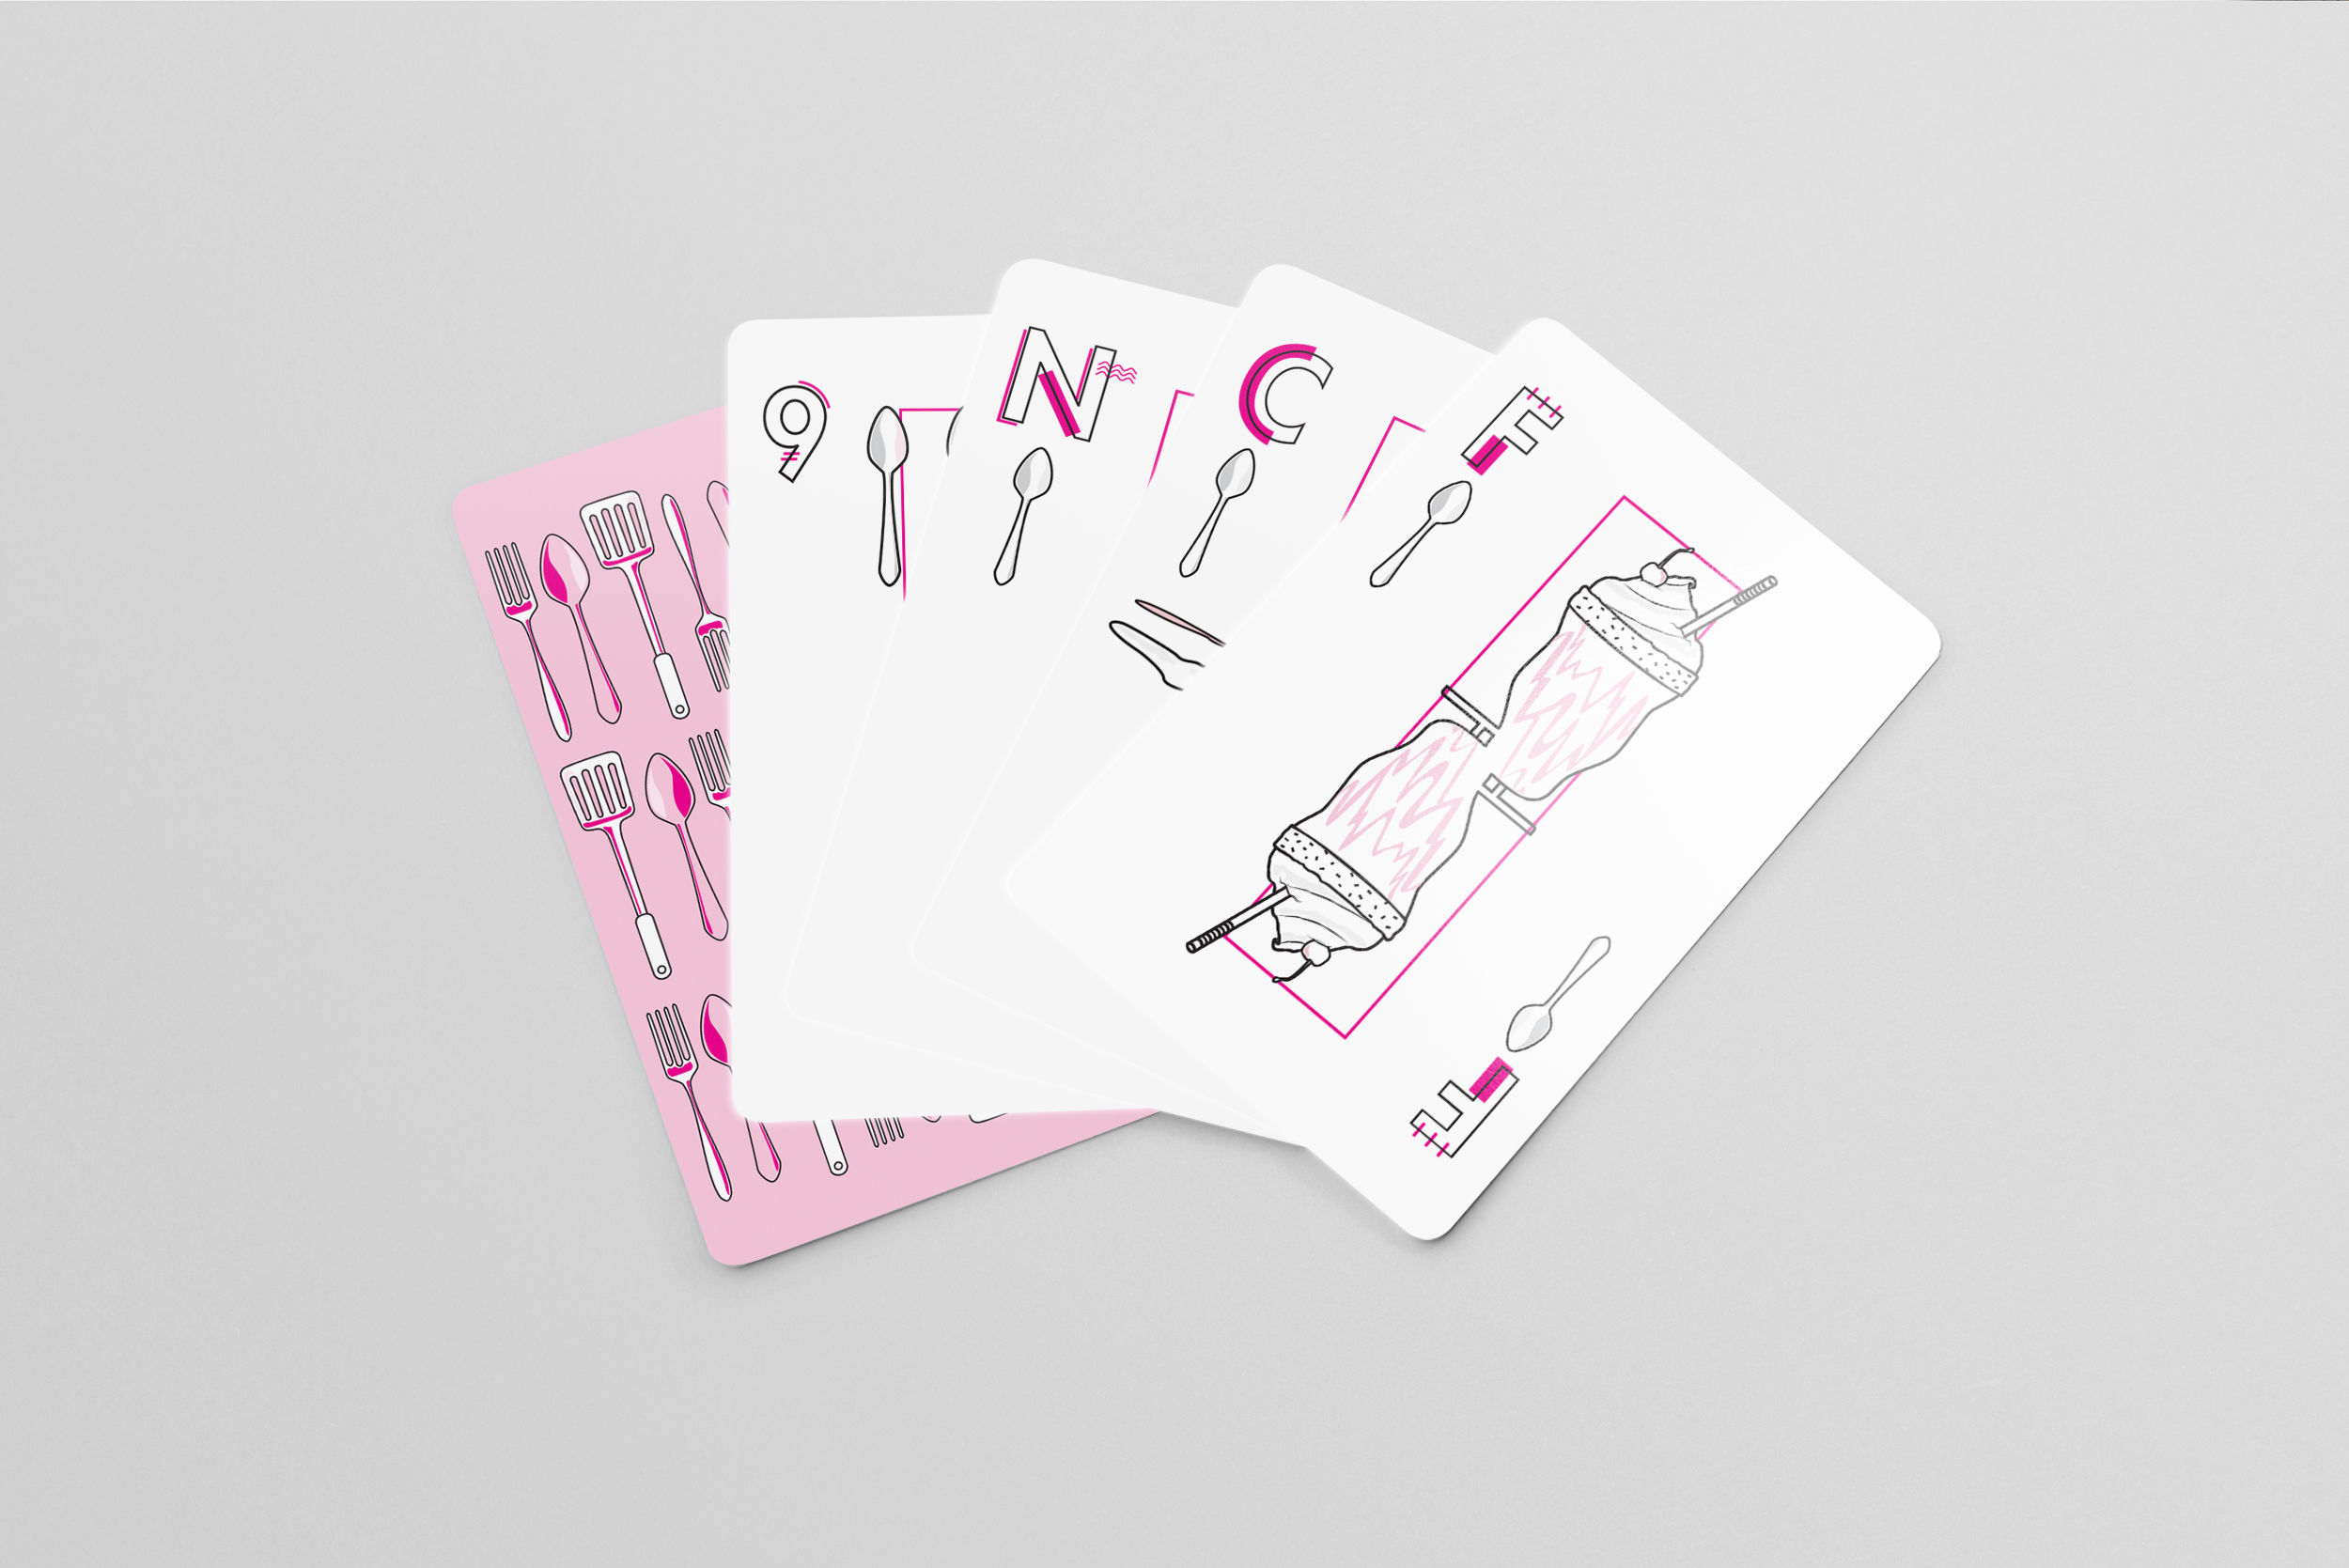 5 cards laid out in a fan shape to show off the traits of a playing card deck. It shows, from left to right, the back of the card, the number card 9, the 'neutral' face card, the 'clumsy' face card, and the 'friendly' face card